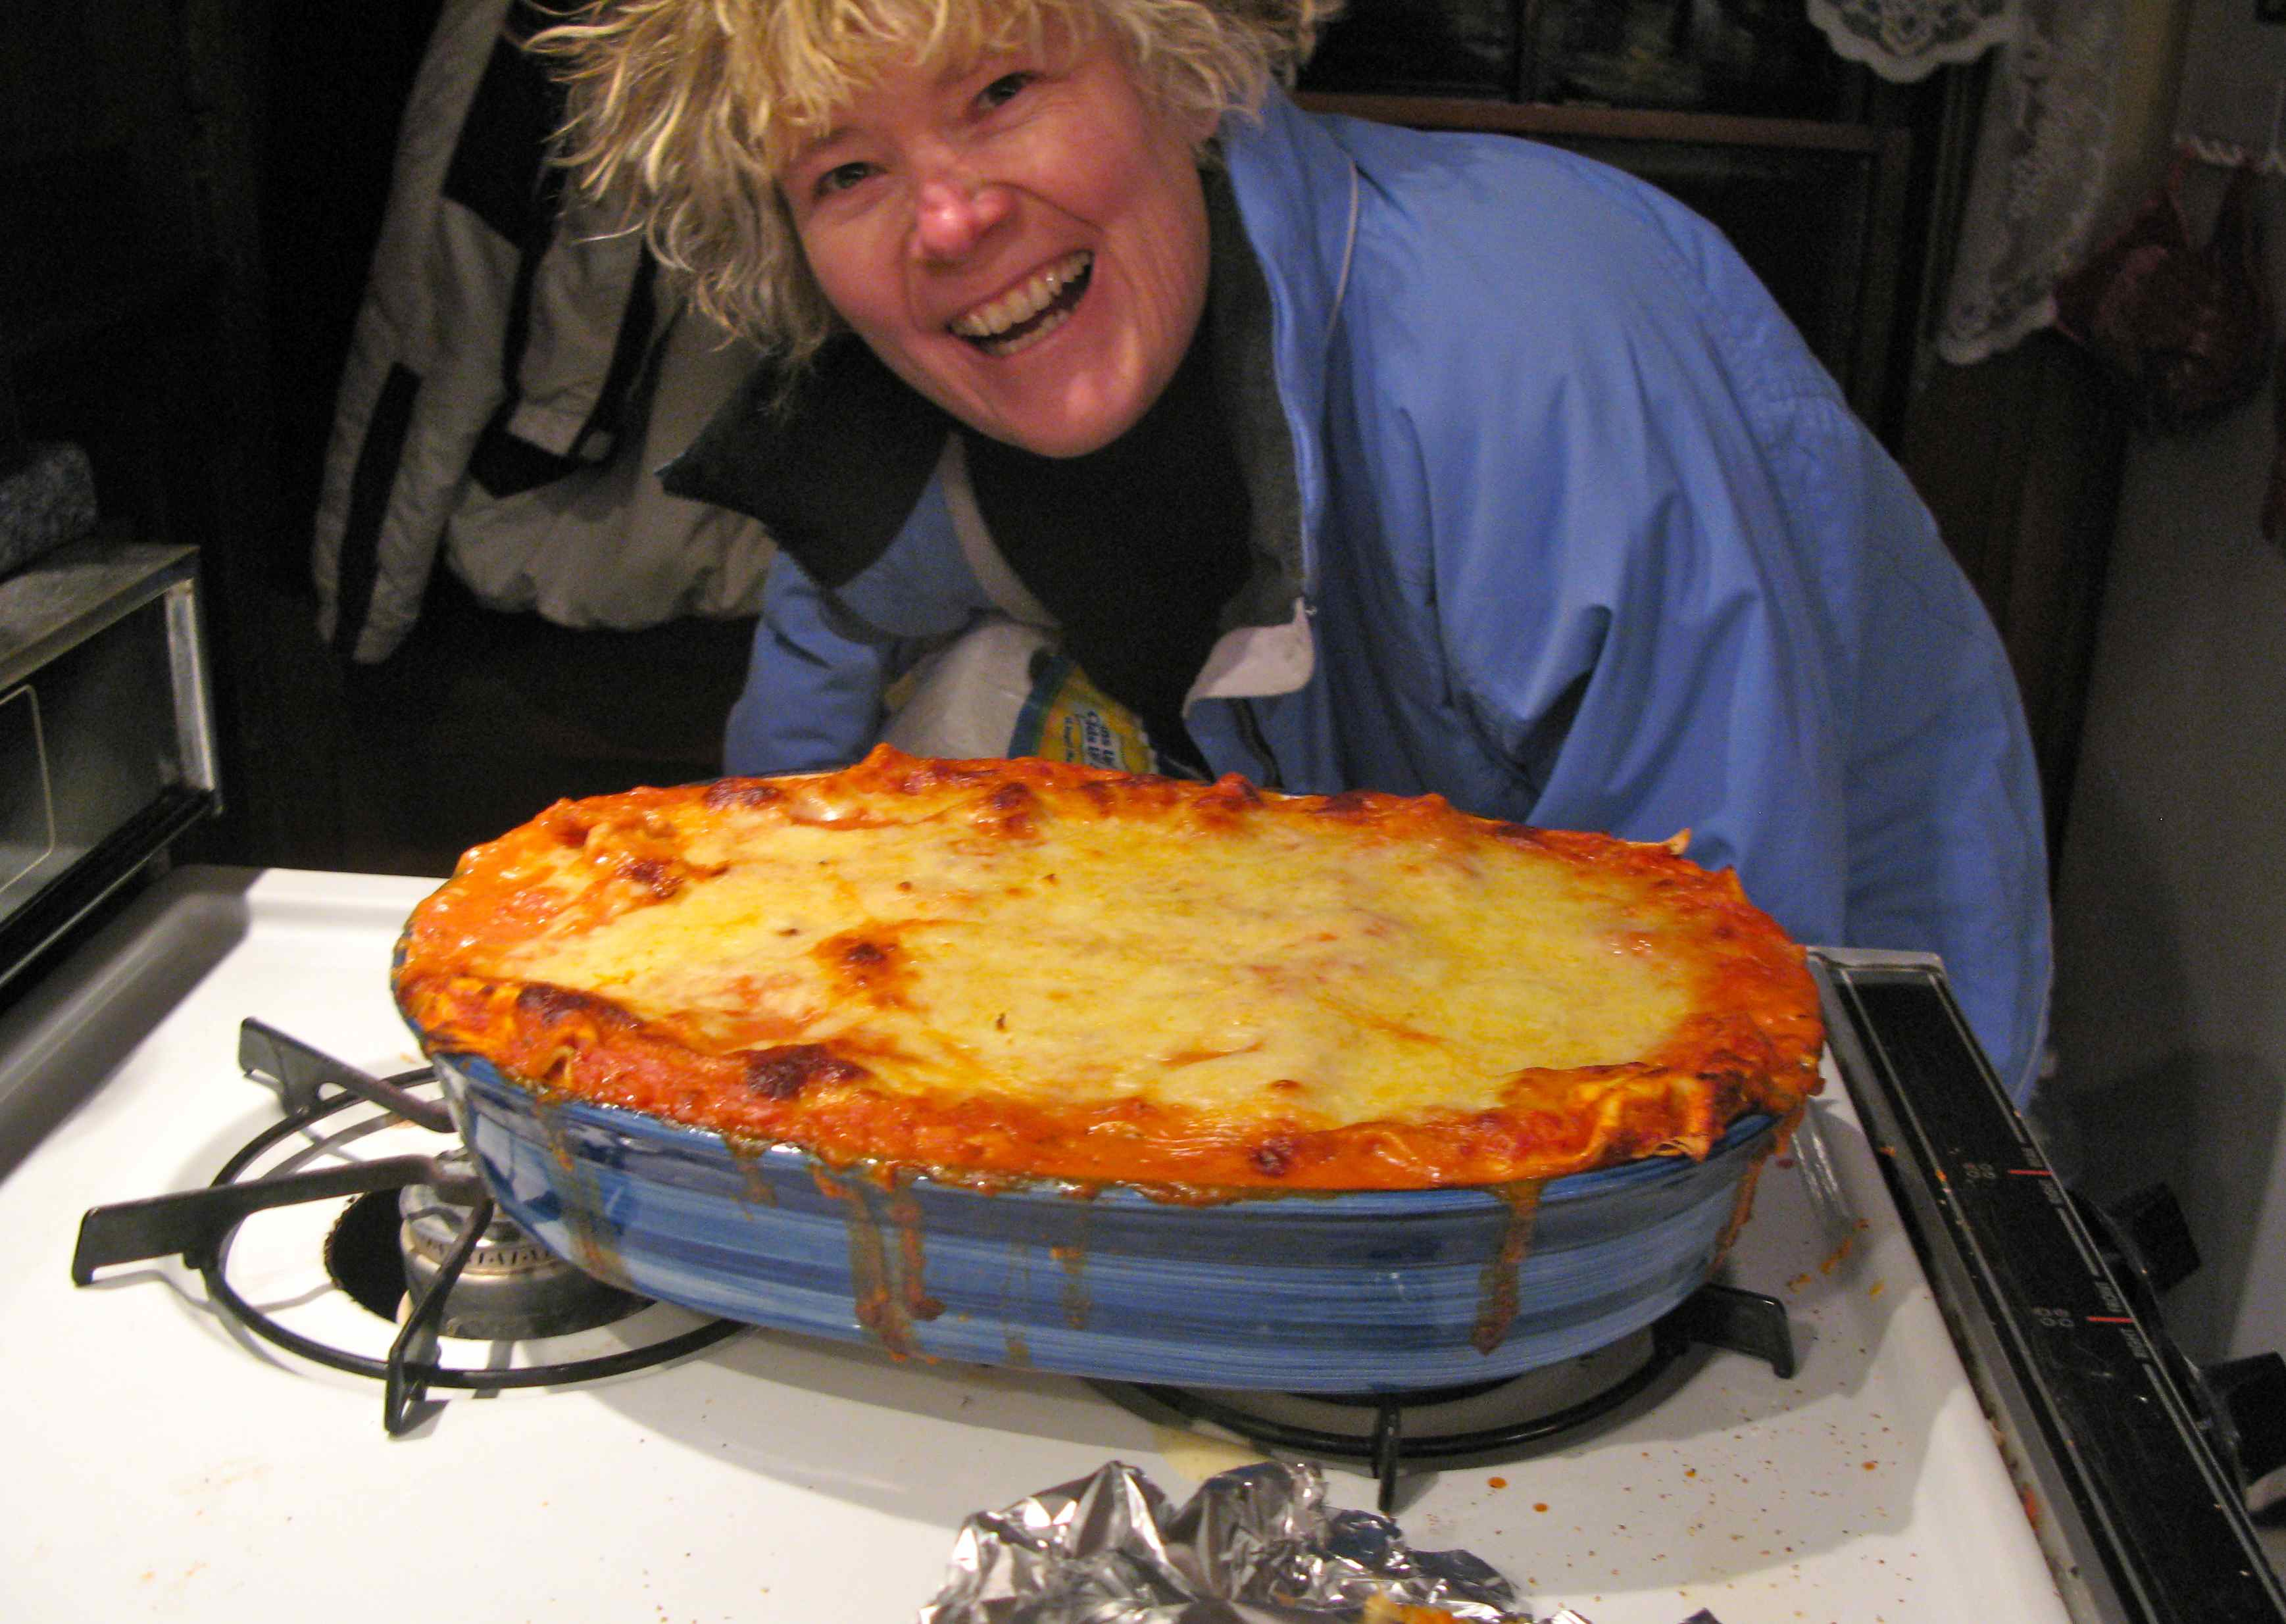 Tricia is thrilled to come home and find a masterpiece lasagna waiting for her on the RootsLiving stovetop.